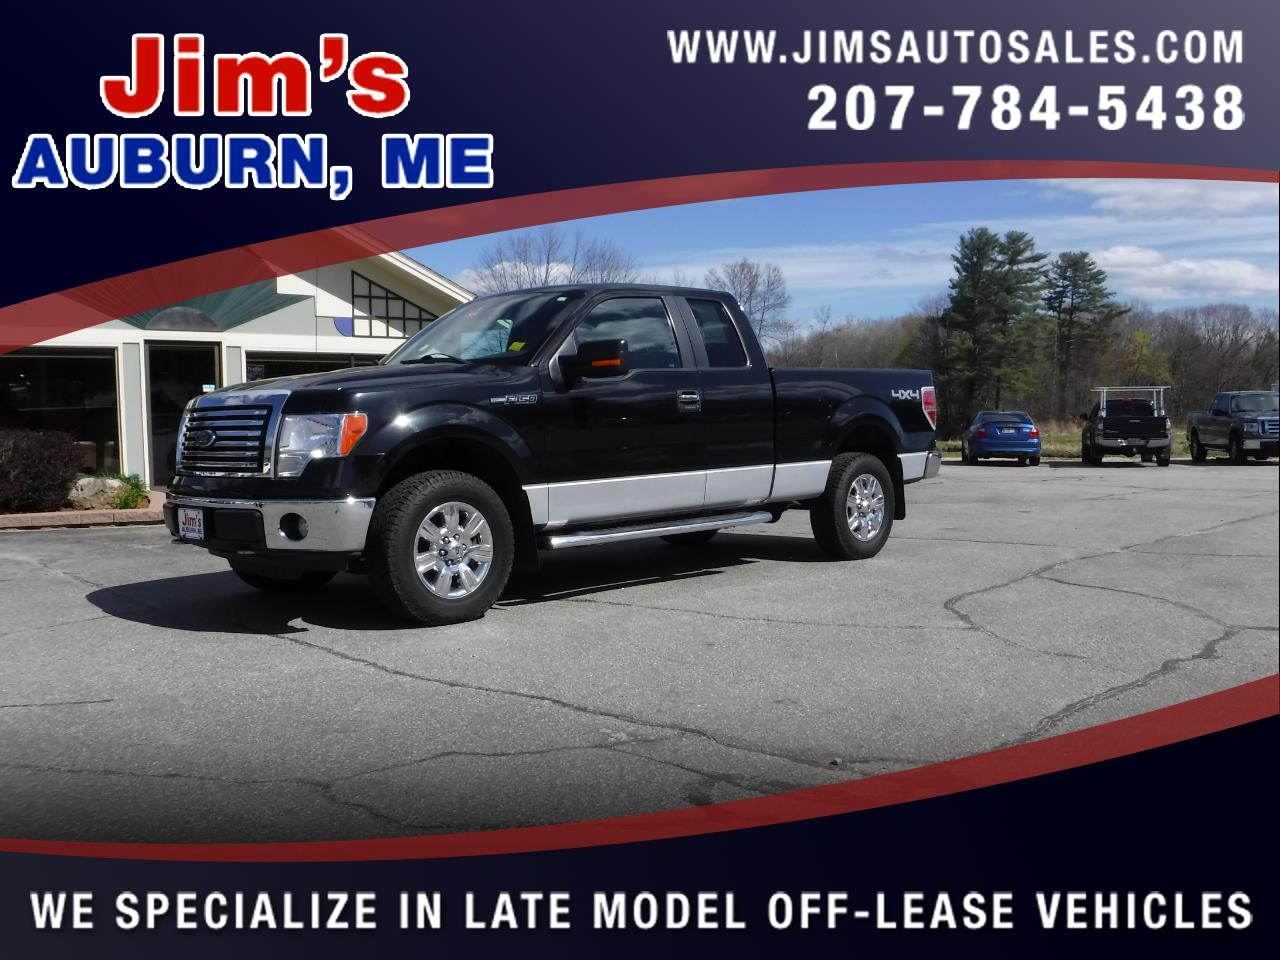 2010 Ford F-150 4x4 supercab